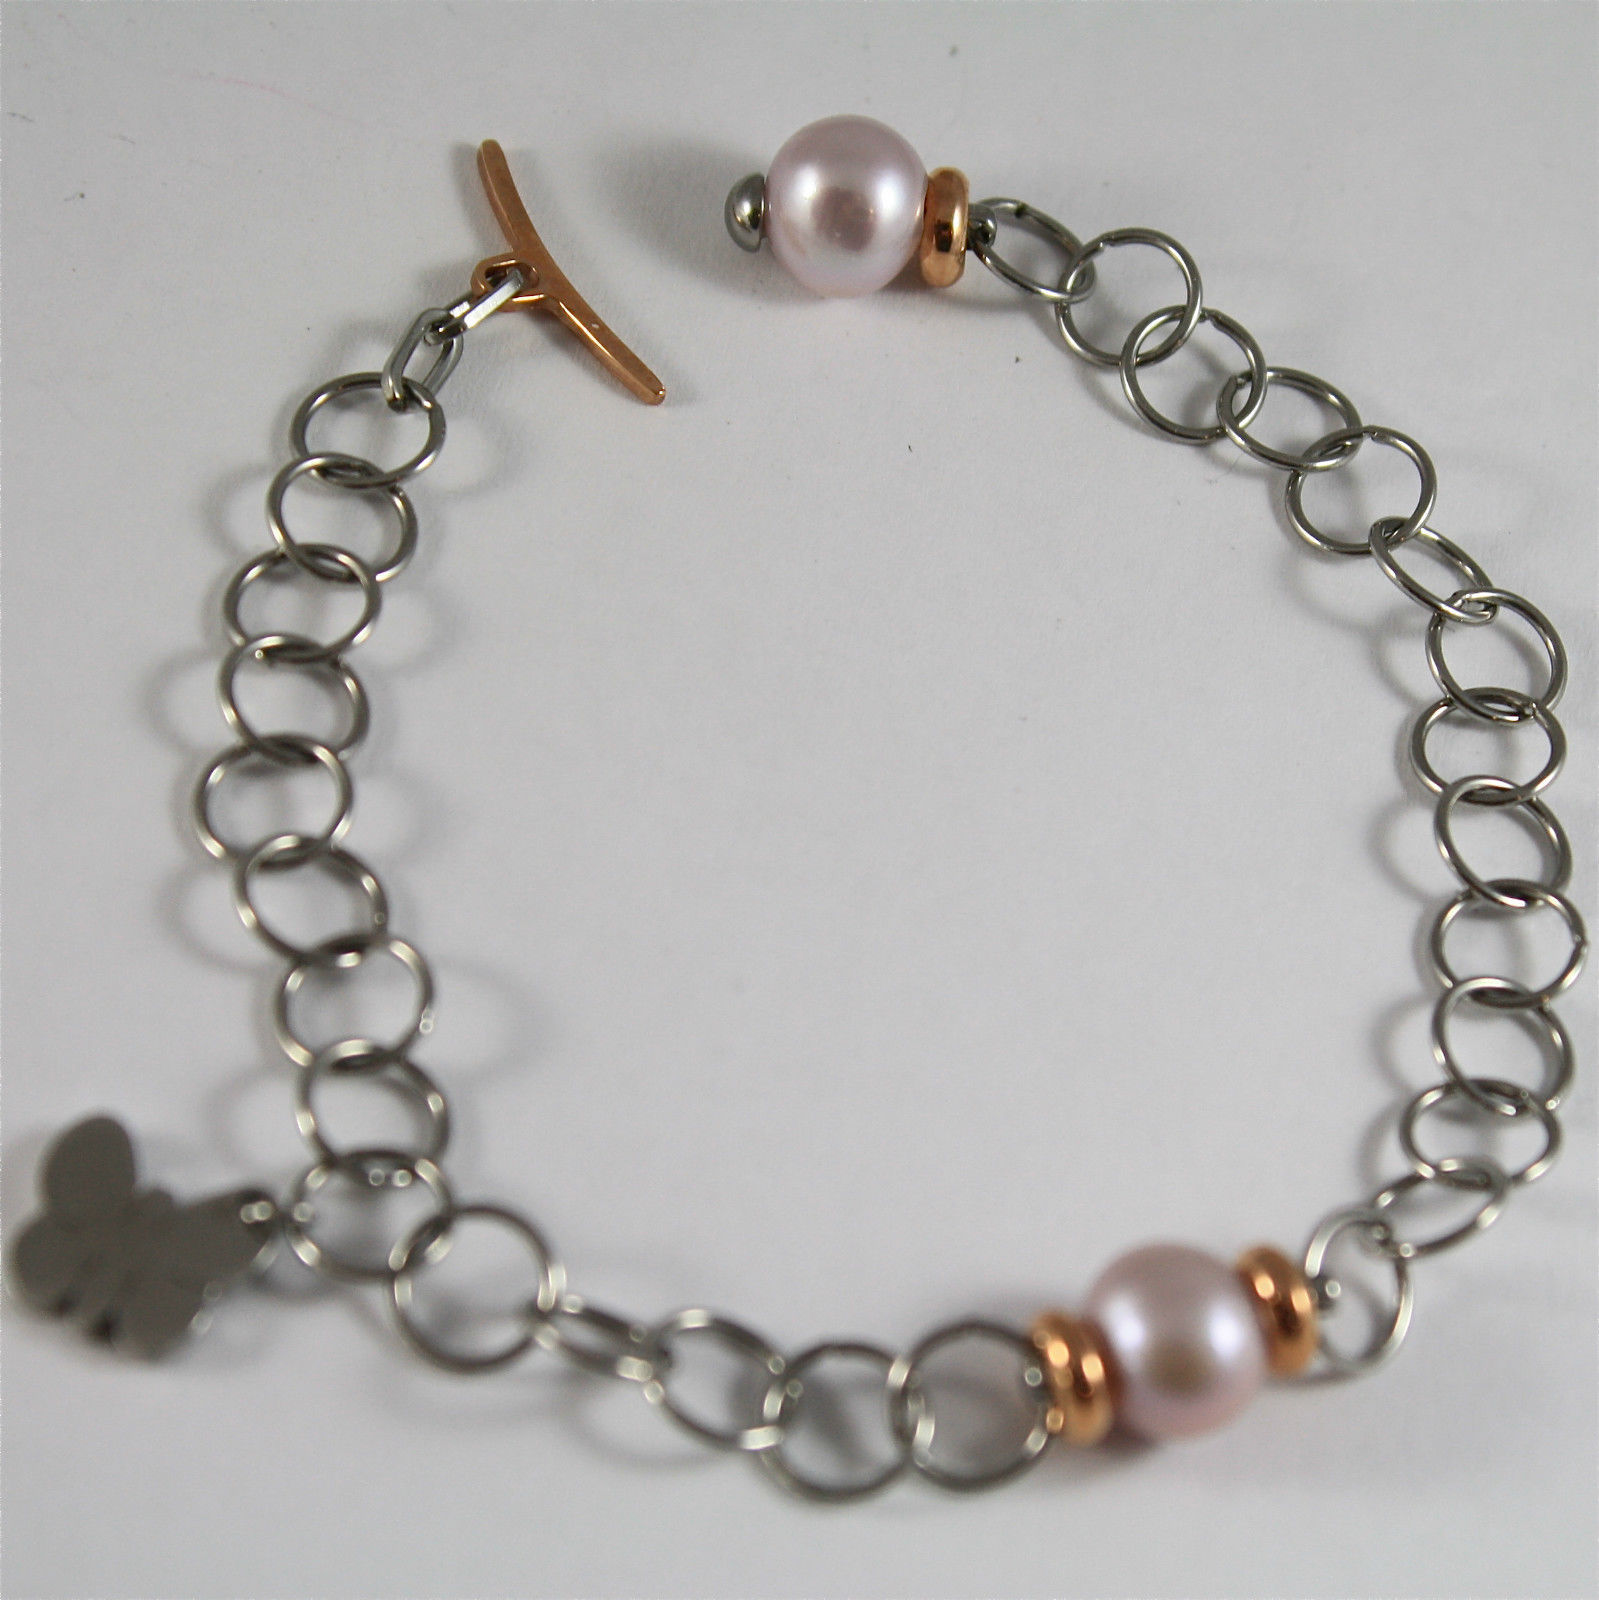 RHODIUM-PLATED BRONZE BRACELET WITH CHARMS AND PEARL BY REBECCA MADE IN ITALY